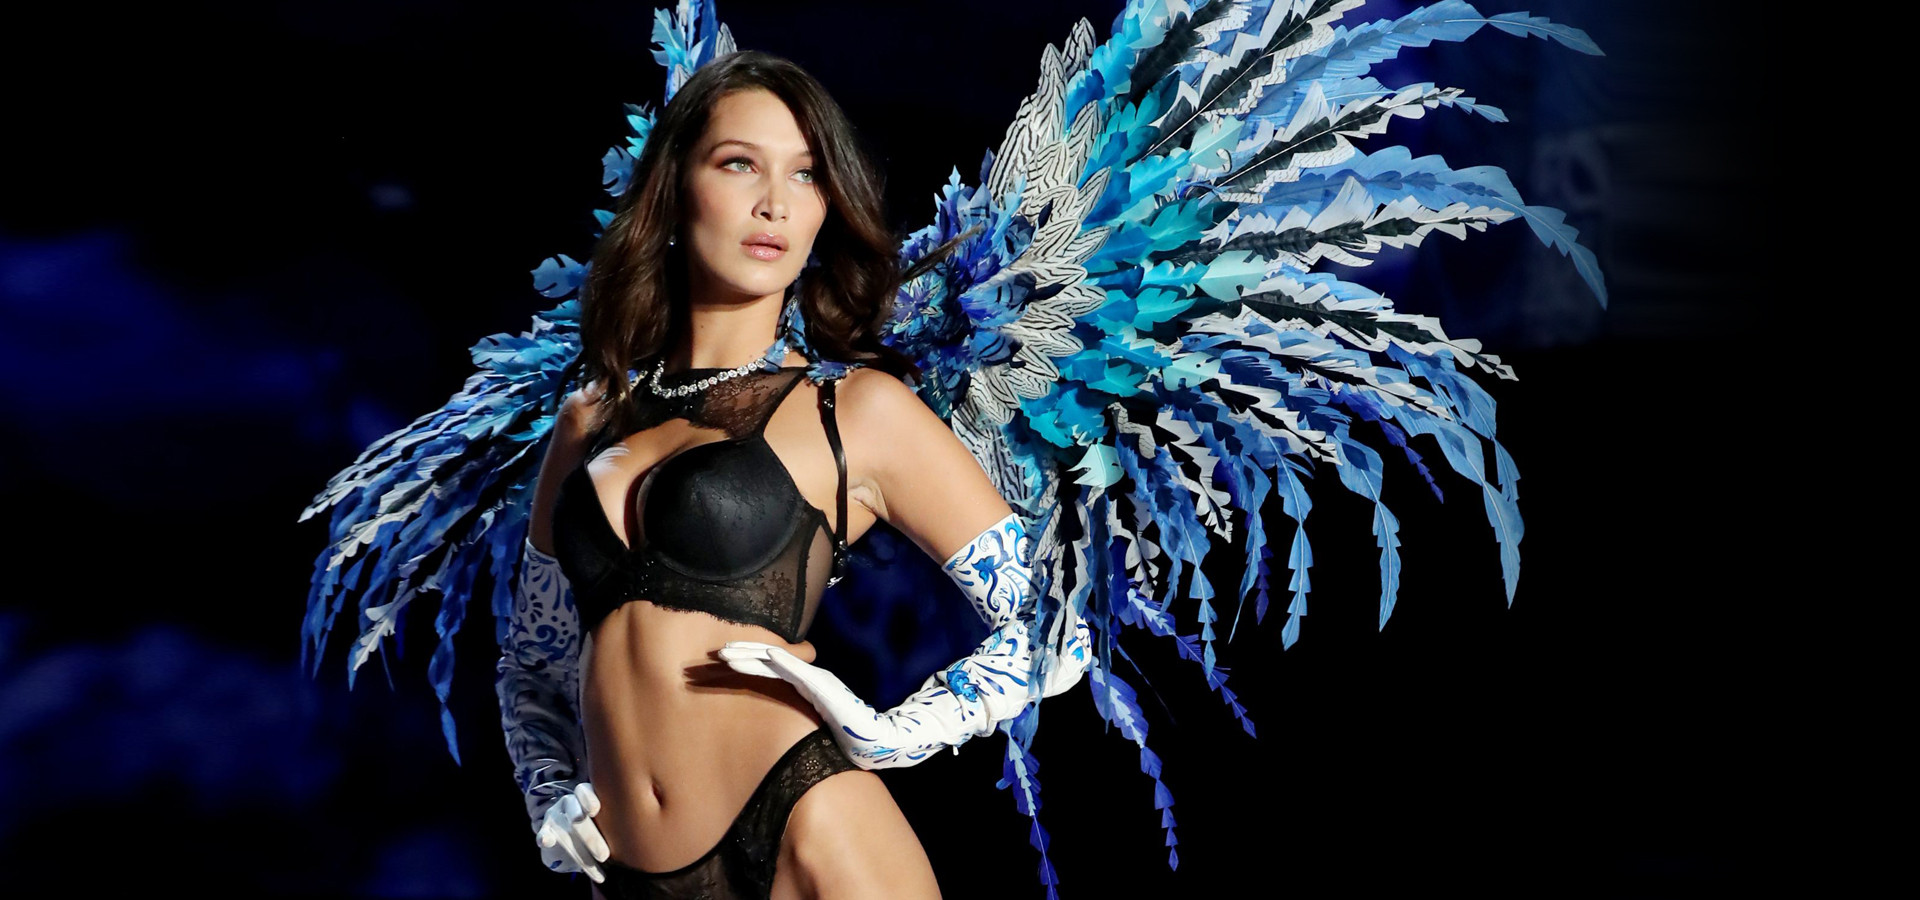 Victoria S Secret News Pictures And Videos E News